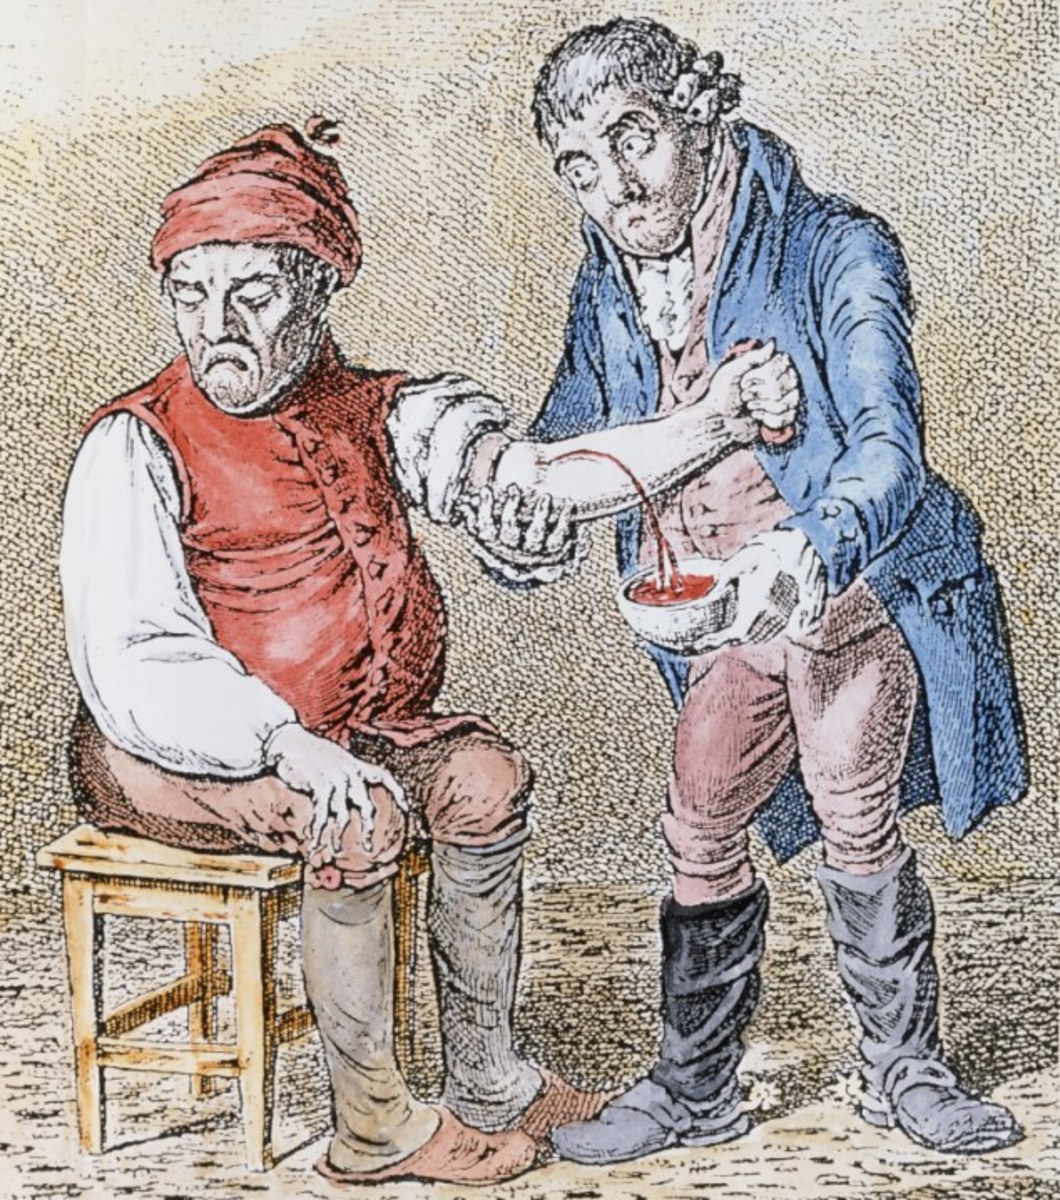 Draining blood was a common method for centuries, hoping to drain out the sickness!